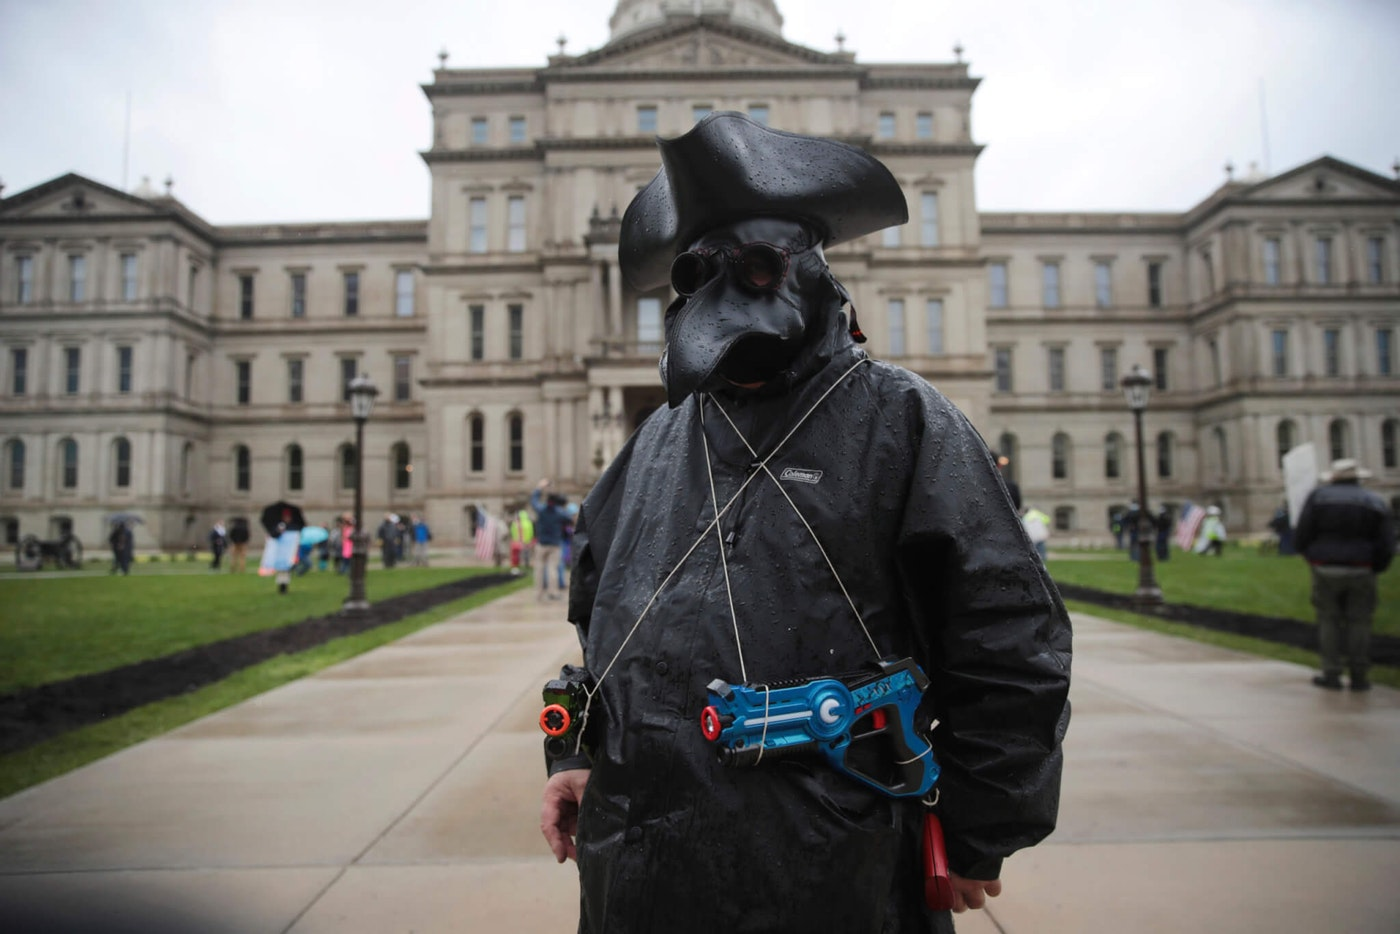 A protester with toy weapons watches during a rally against Michigan's coronavirus stay-at-home order at the State Capitol in Lansing, Mich., Thursday, May 14, 2020. (AP Photo/Paul Sancya)